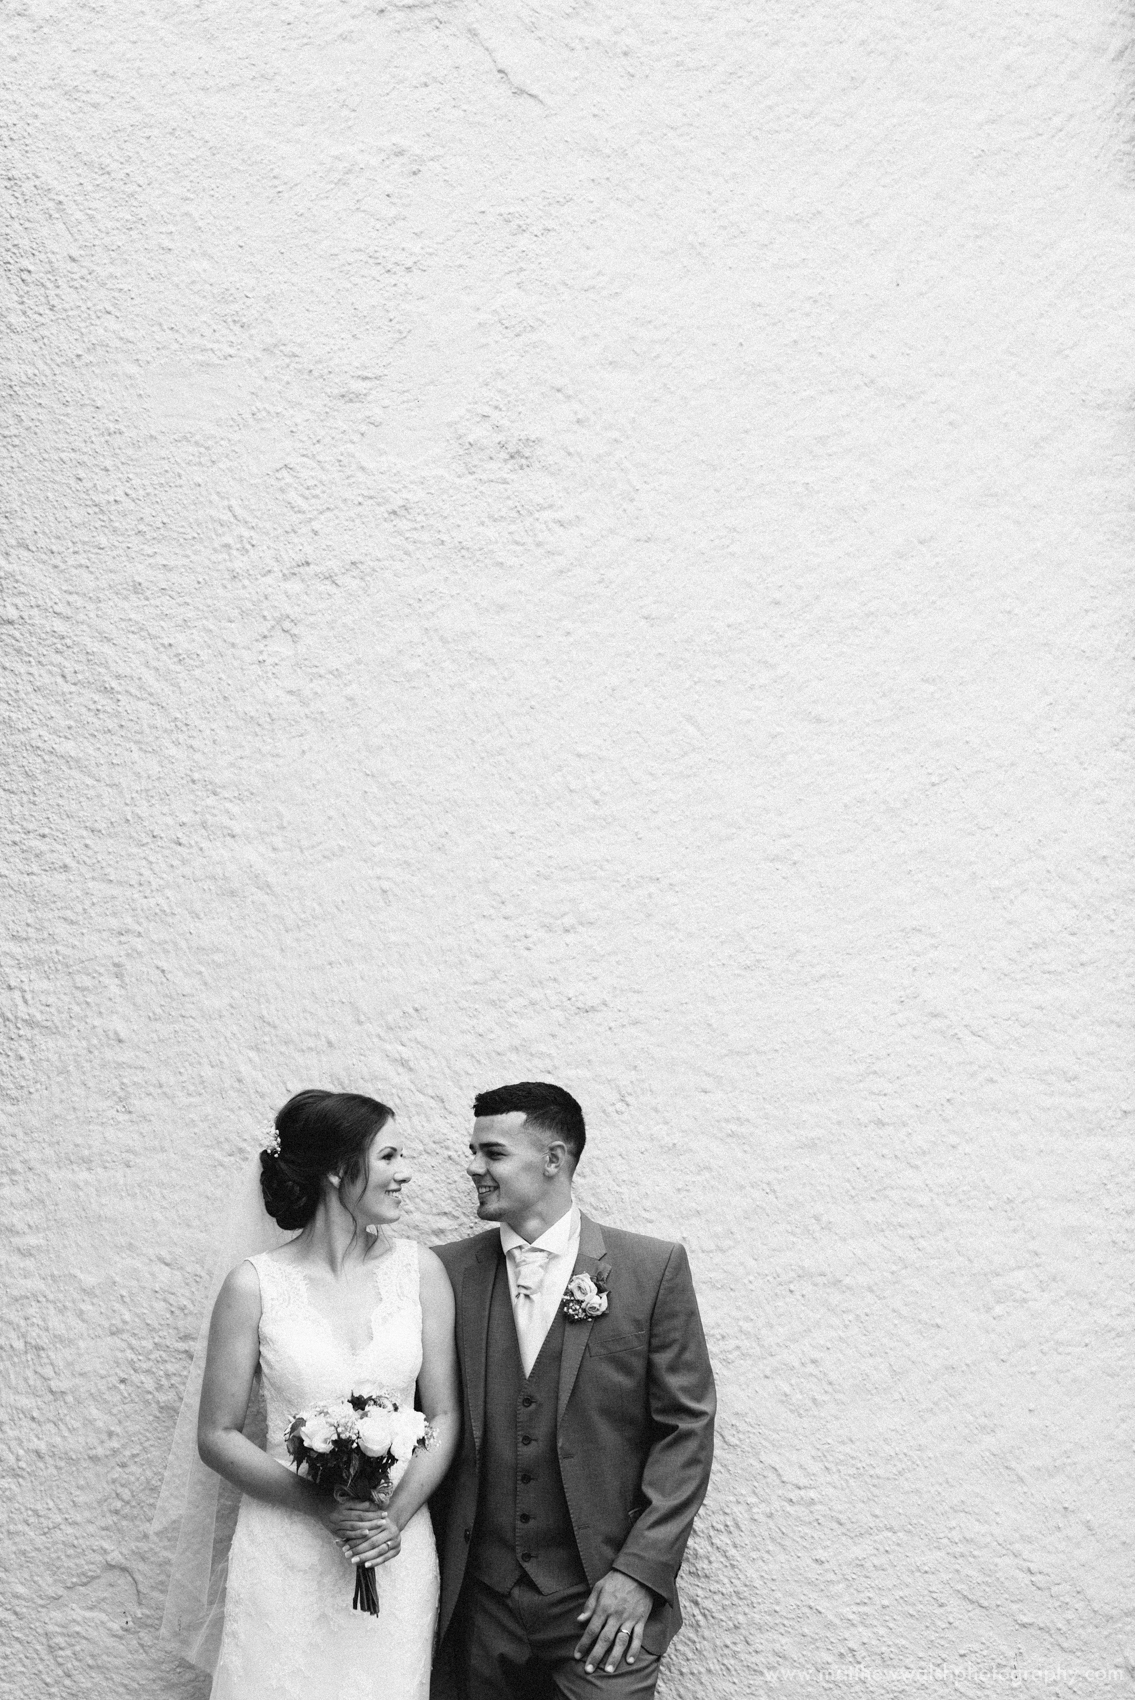 A photographic portrait of the married couple against a neutral wall with negative space